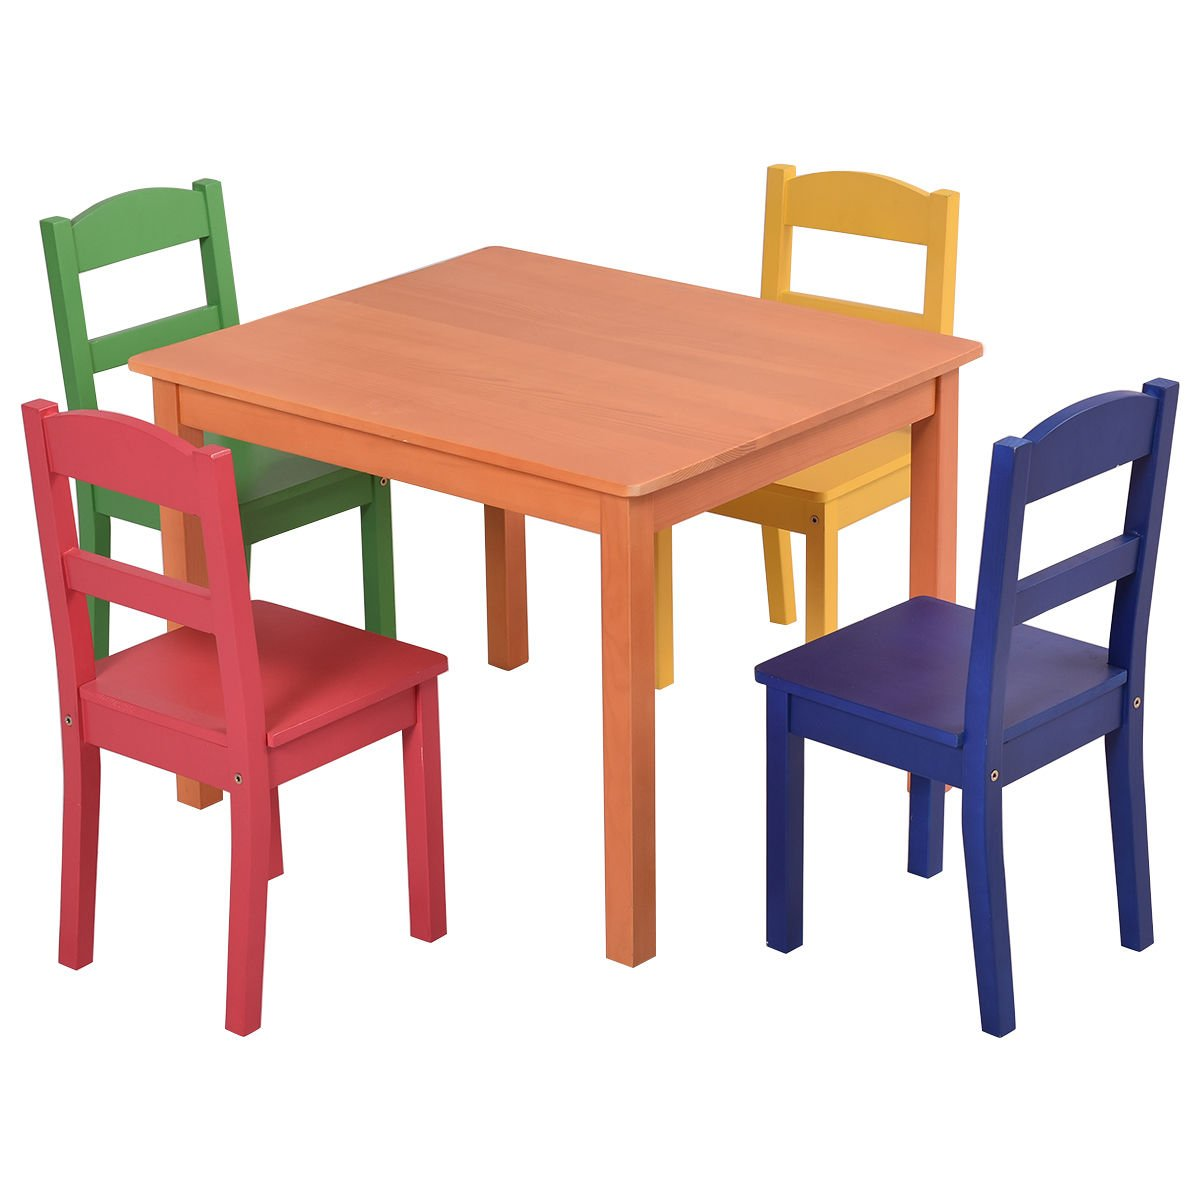 Costzon Kids 5 Piece Table and Chair Set, Made of Pine Wood, Children Multicolor Play Room Furniture